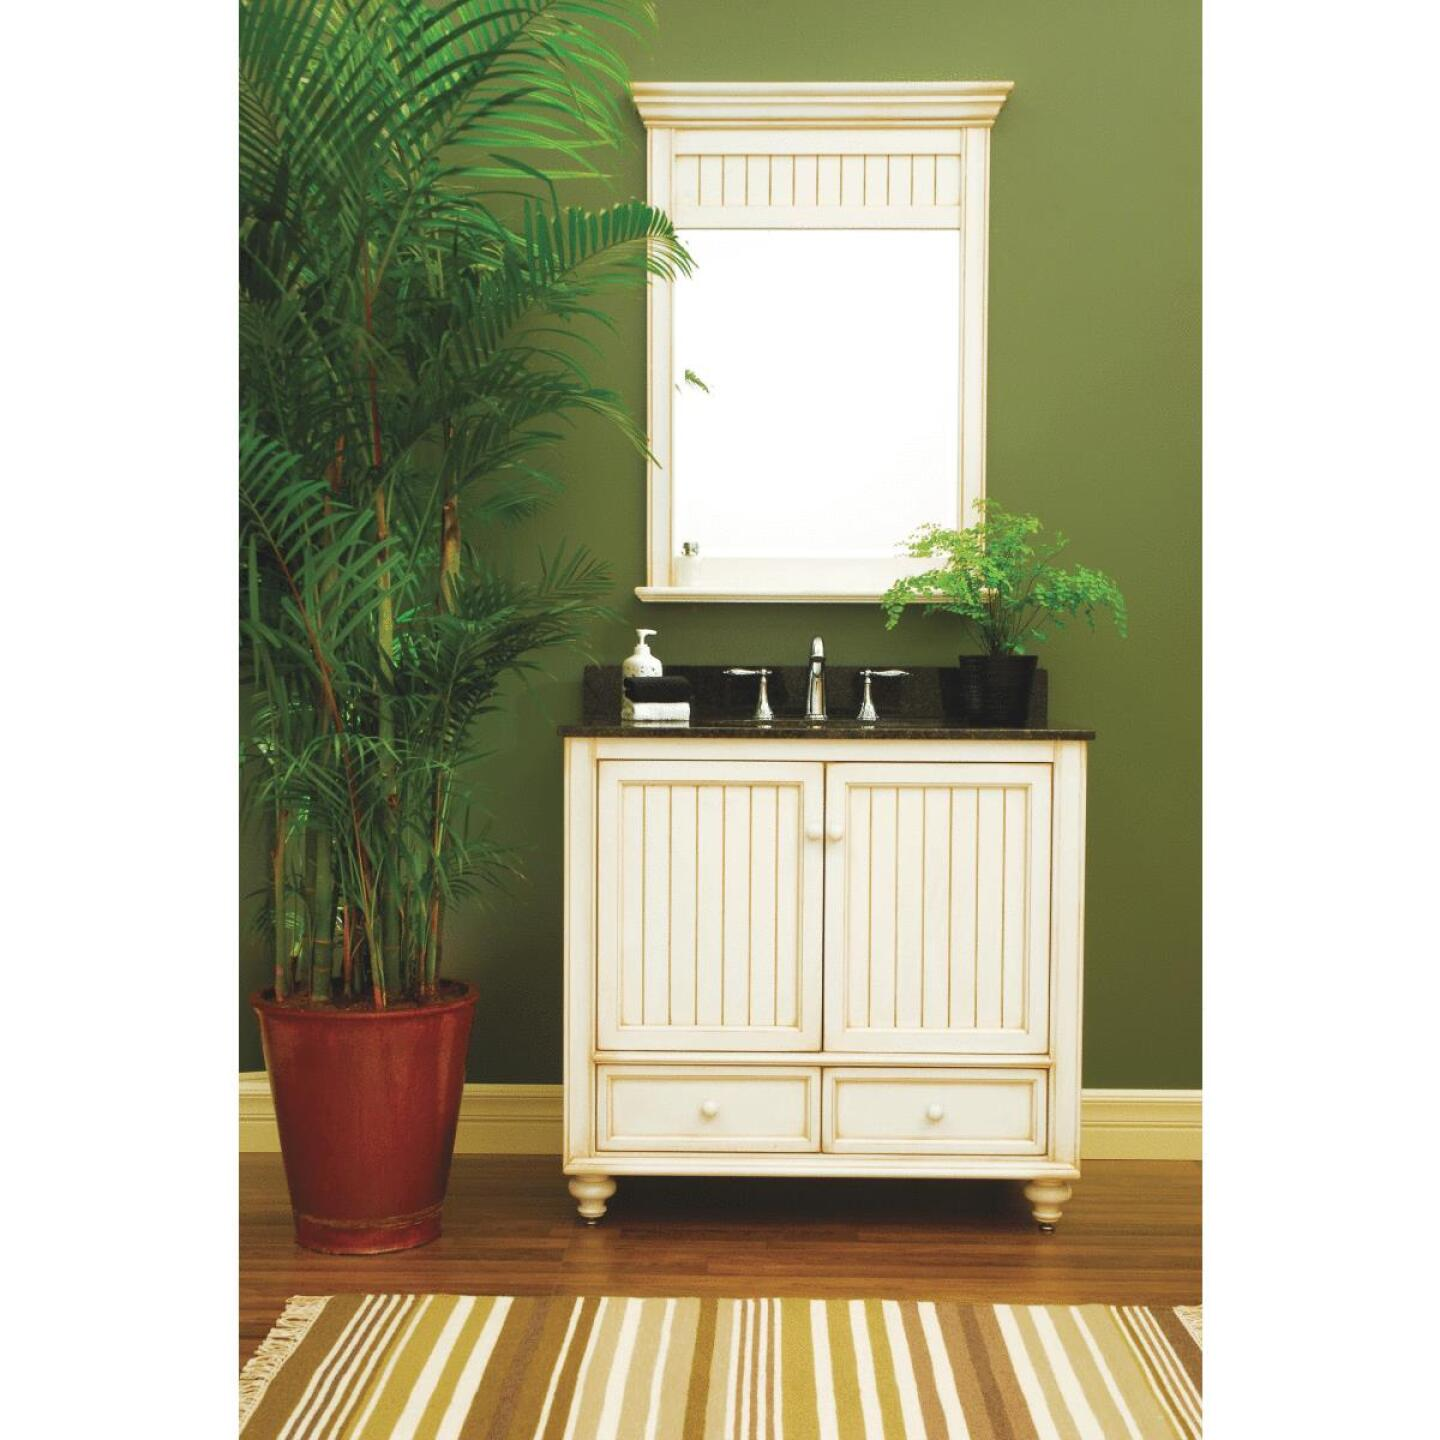 Sunny Wood Bristol Beach White 36 In. W x 34 In. H x 21 In. D Vanity Base, 2 Door/2 Drawer Image 7